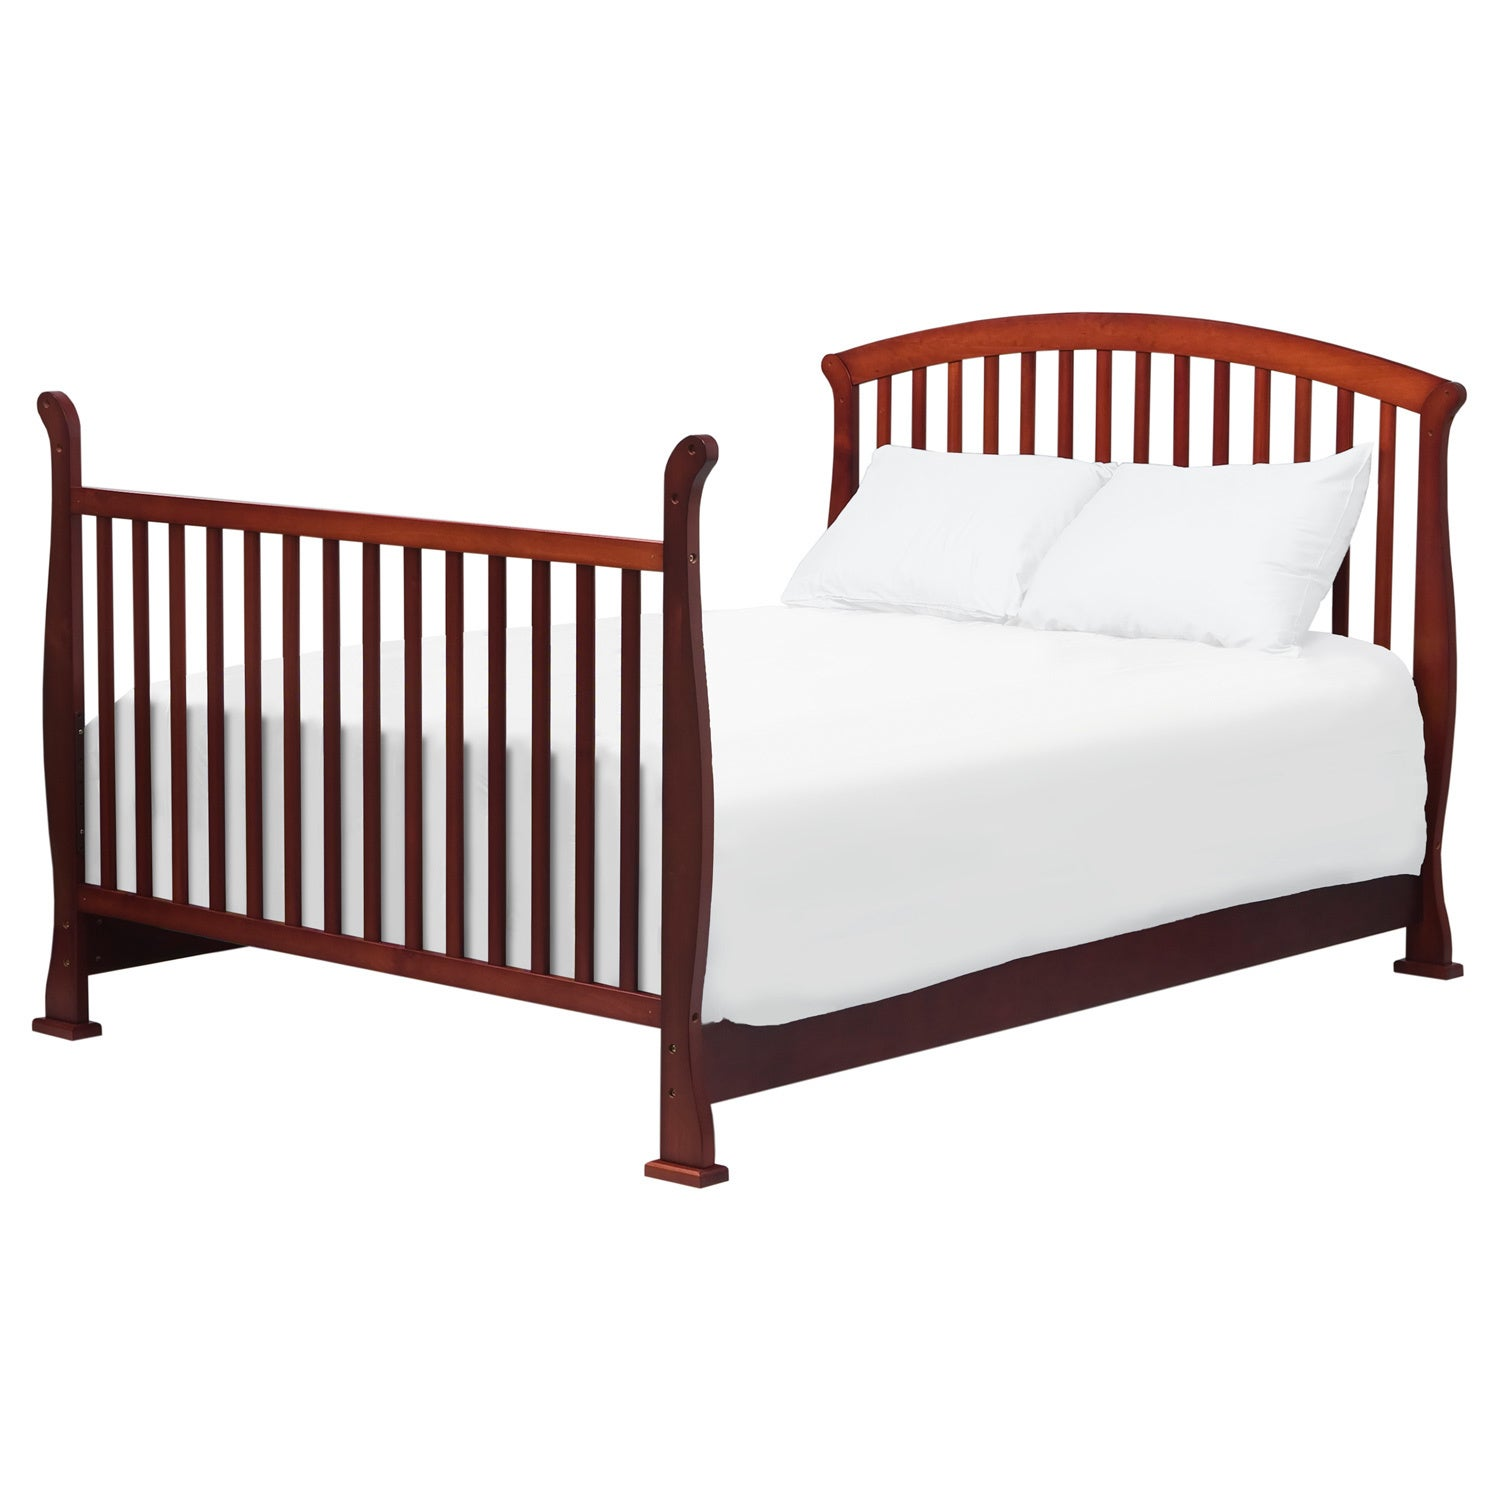 gallery davinci pinterest in white door best tables changer changing on crib baby cribs convertible diaper images parker pure